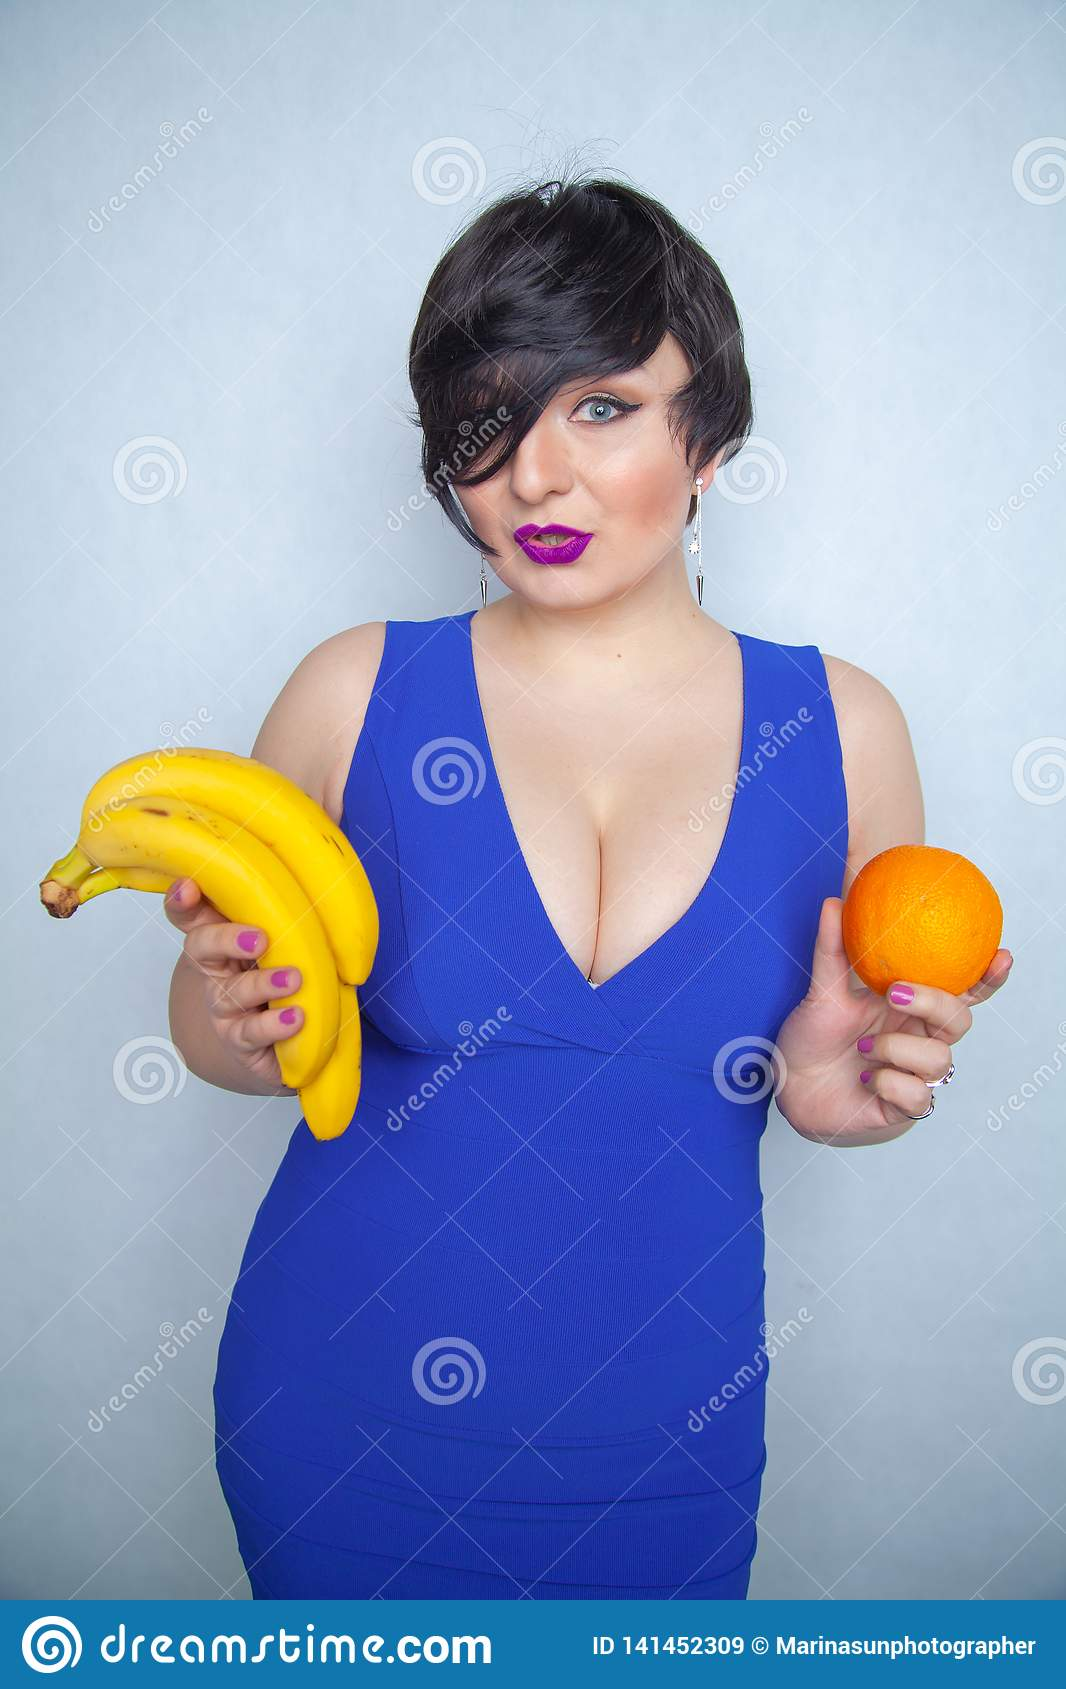 Cute Chubby Girl With Short Black Hair In A Blue Dress Holding An Orange And Bananas -1526